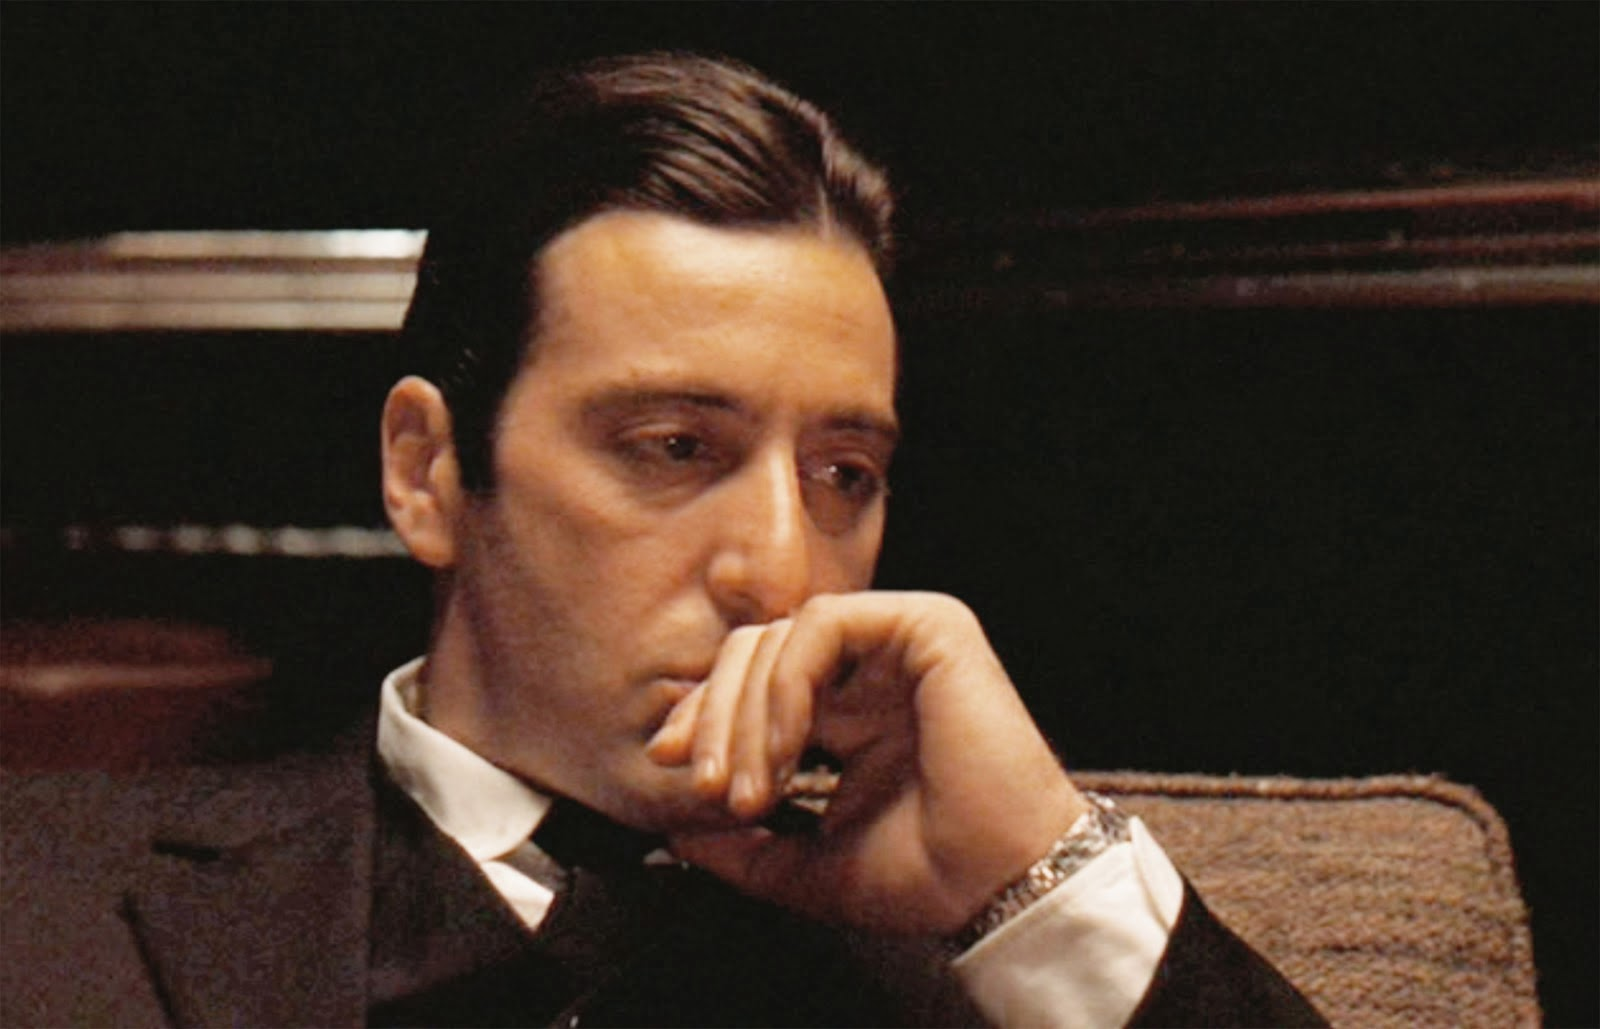 michael corleone View the profiles of people named michael corleone join facebook to connect with michael corleone and others you may know facebook gives people the.